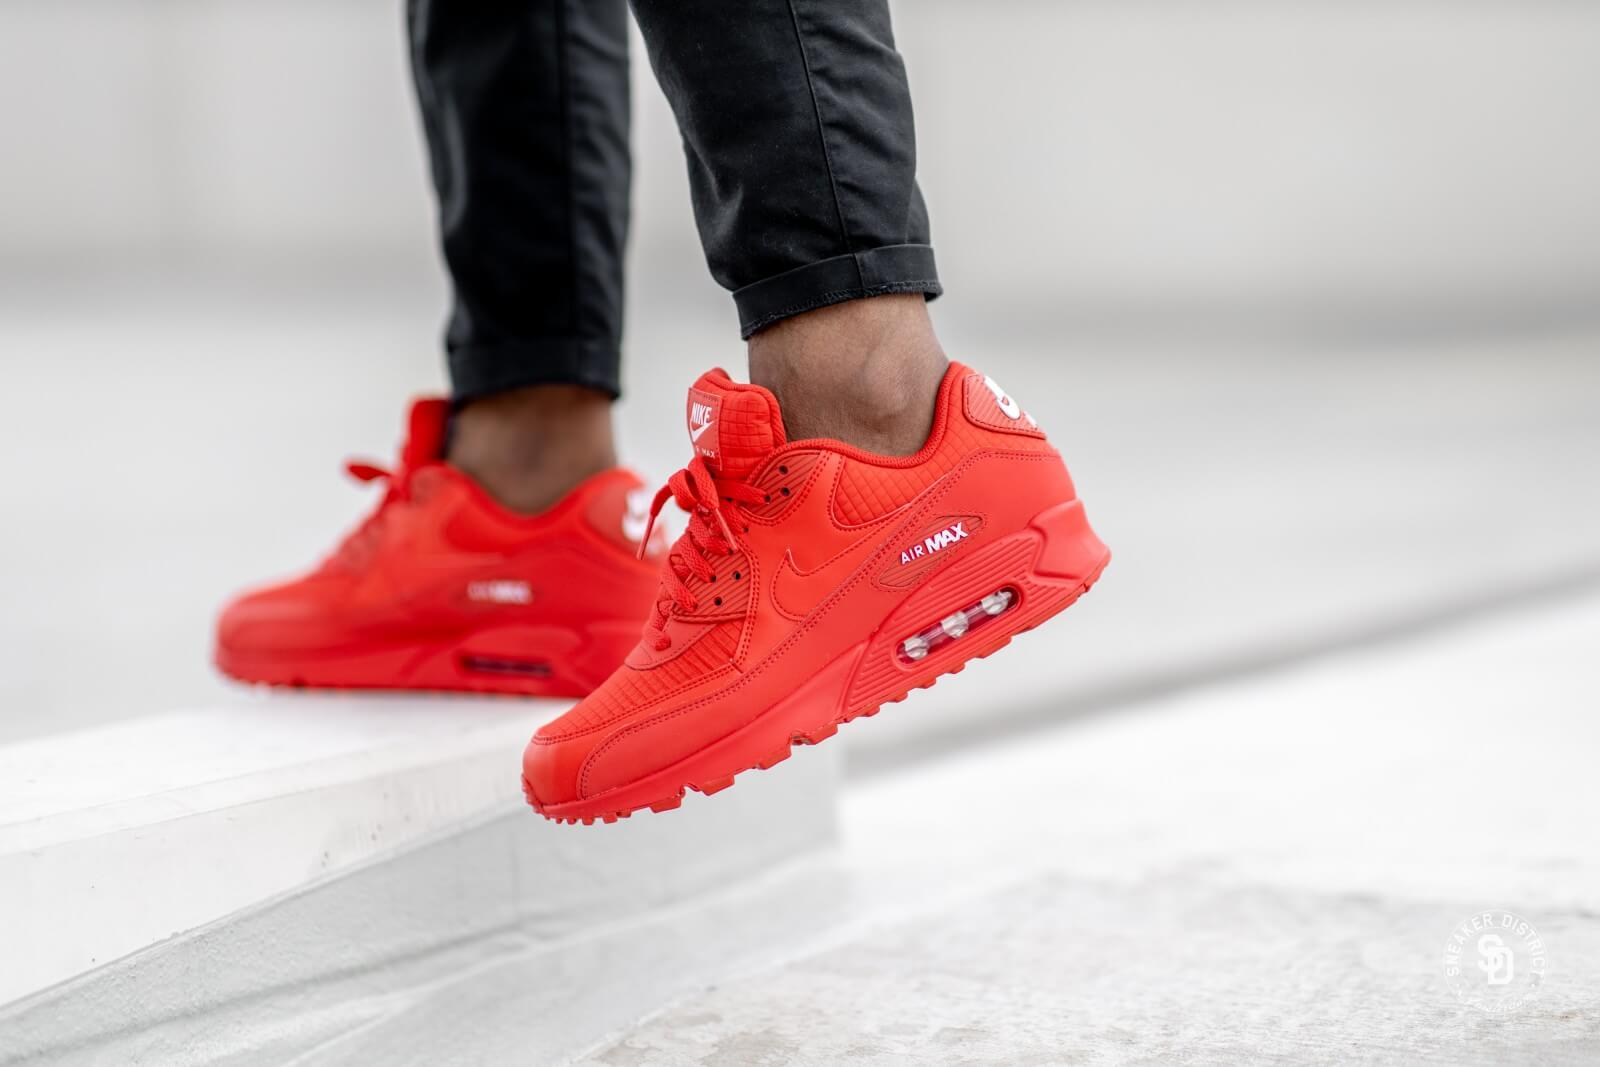 Nike Air Max 90 Essential University RedWhite AJ1285 602